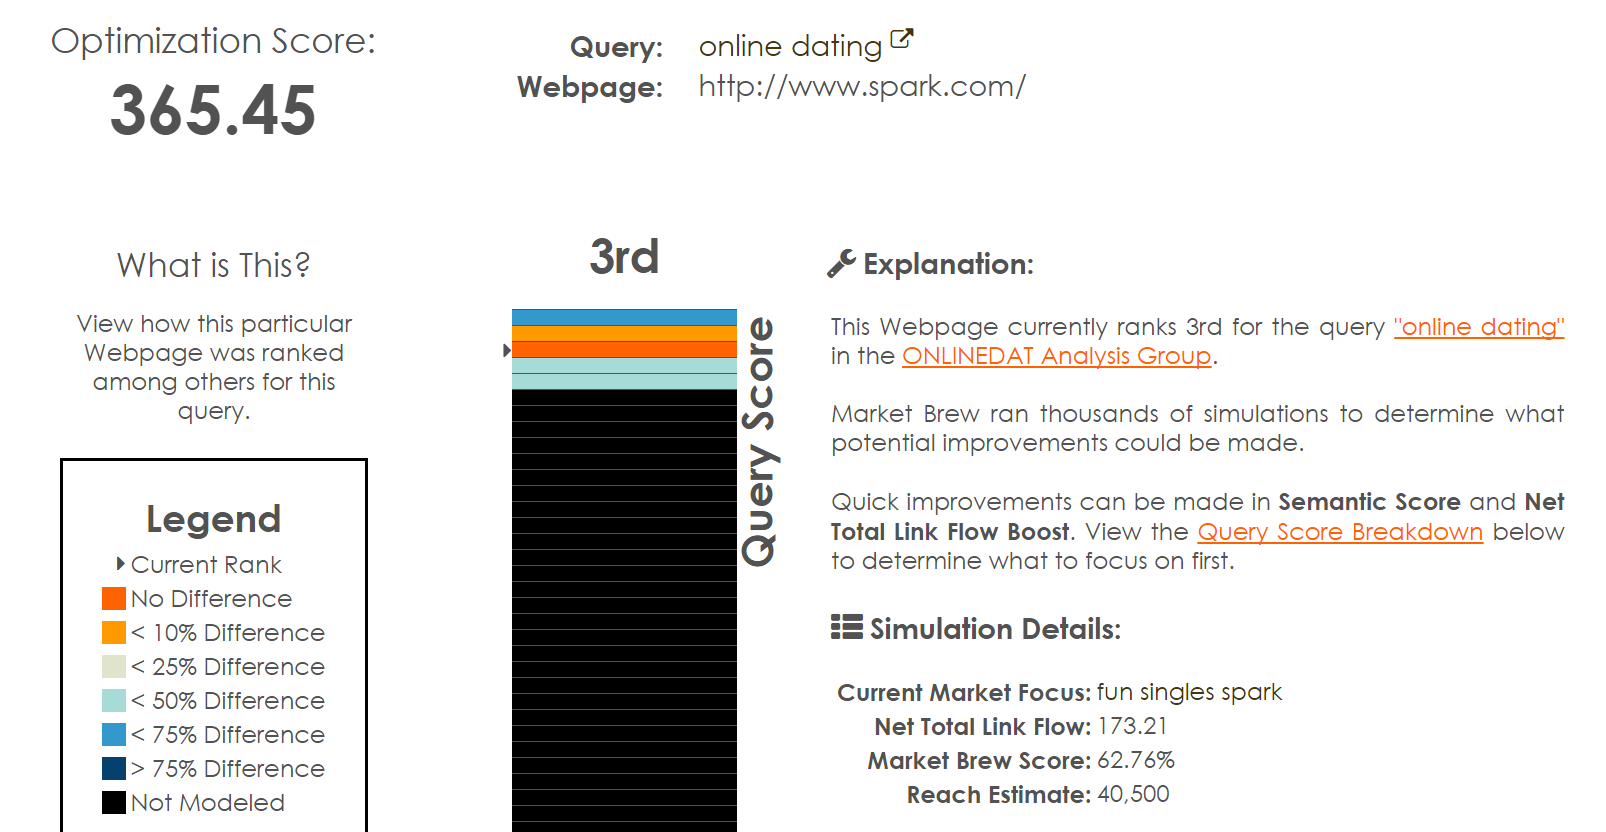 How Online Dating Became a $2 Billion Industry